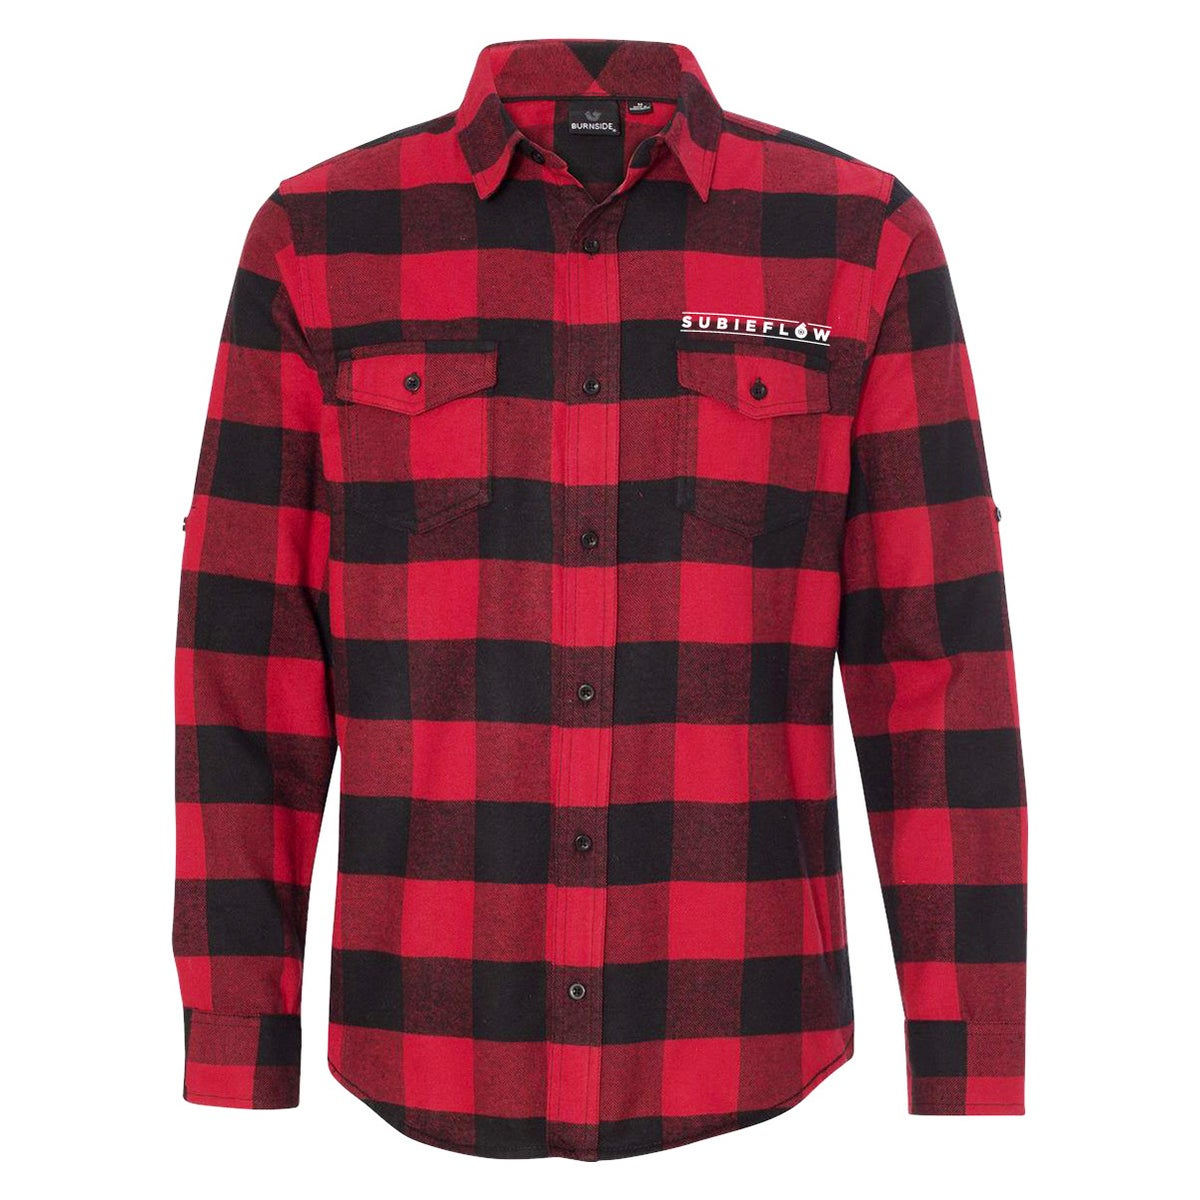 Image of SubieFlow Flannel